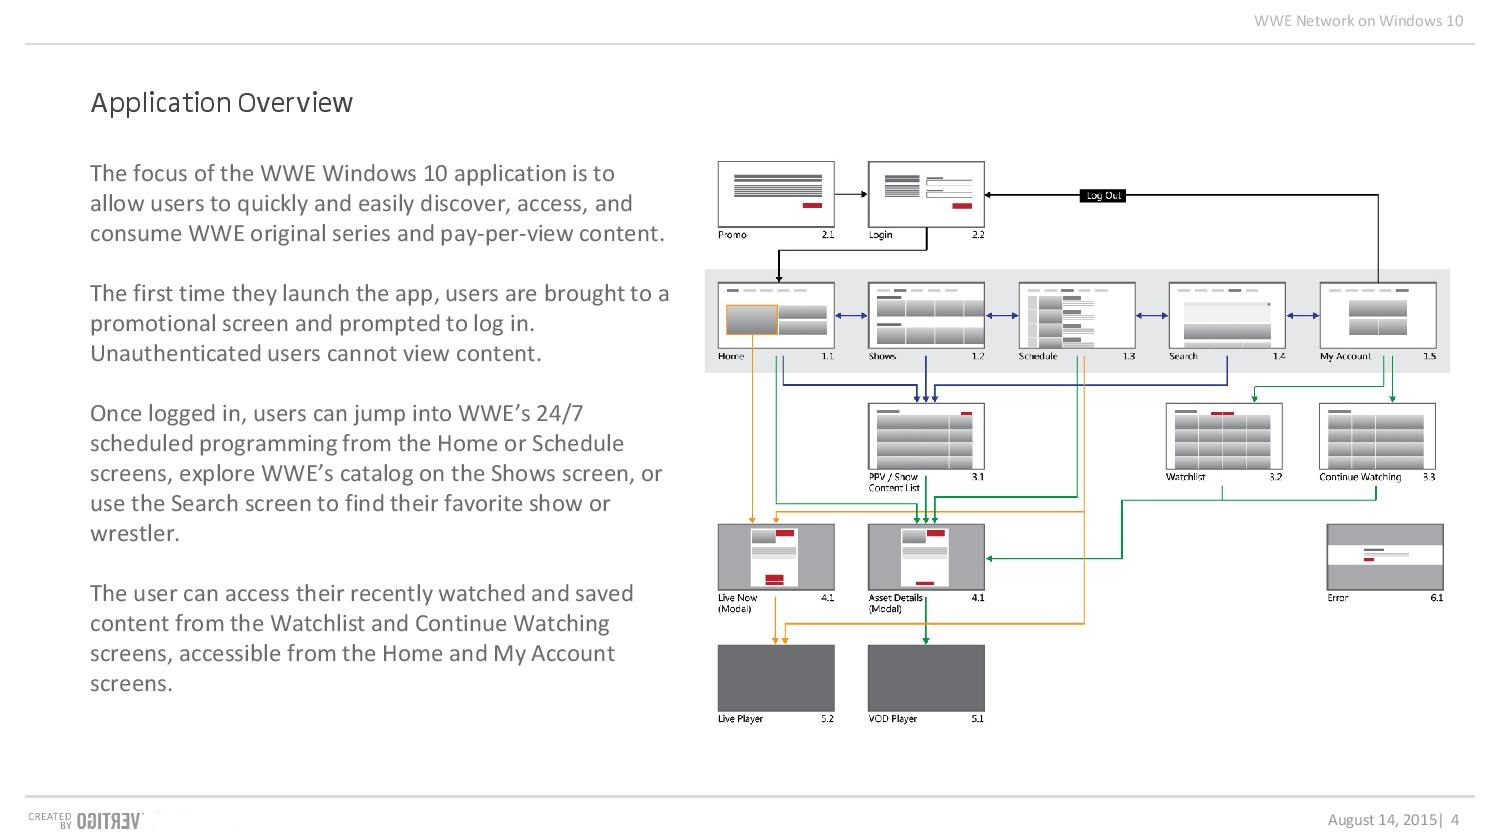 The application map and overview sum up the key screens and how users are expected to navigate them.